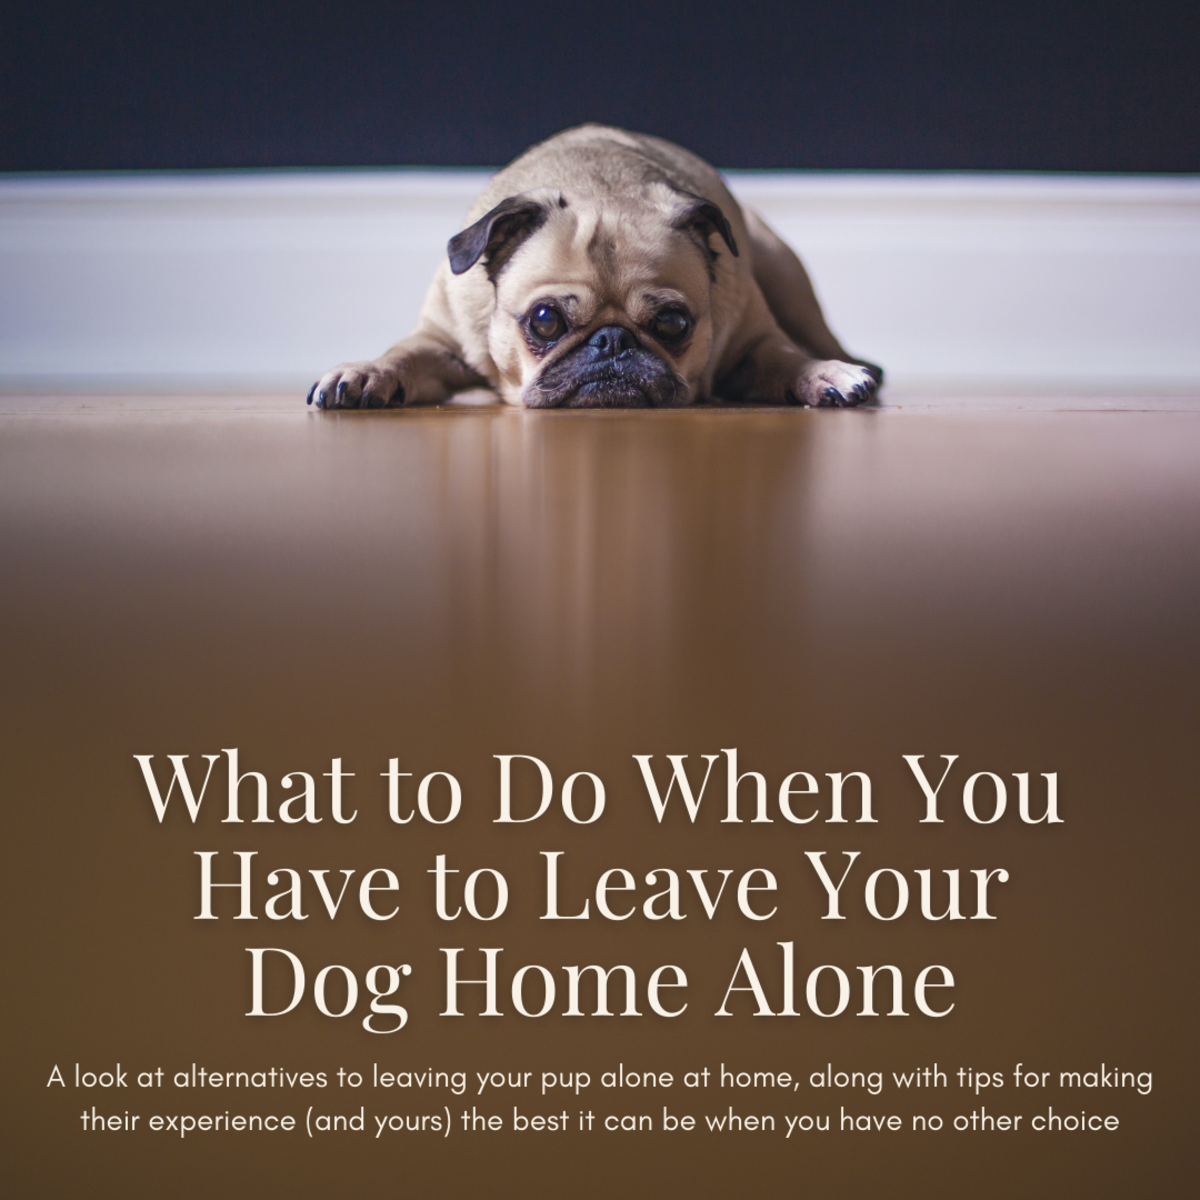 What to Do If You Have to Leave Your Dog Home Alone